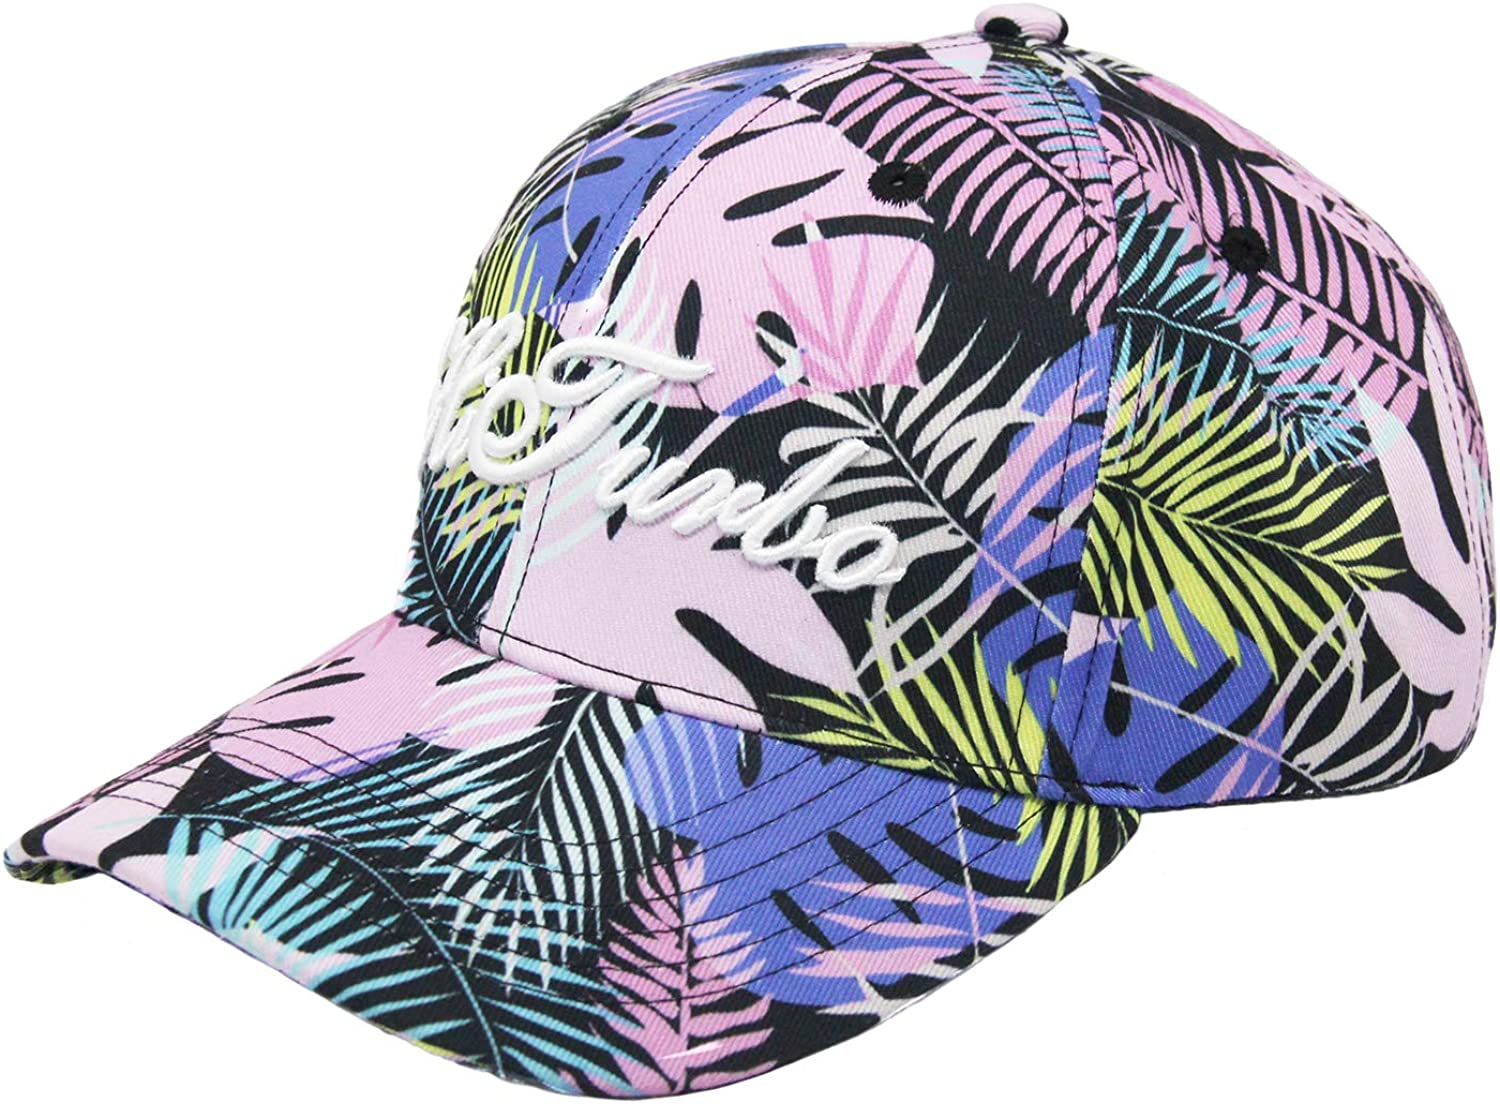 Hiturbo Summer UV Protection 5 ☆ popular Limited time trial price Hats,Beach Breathable Baseball